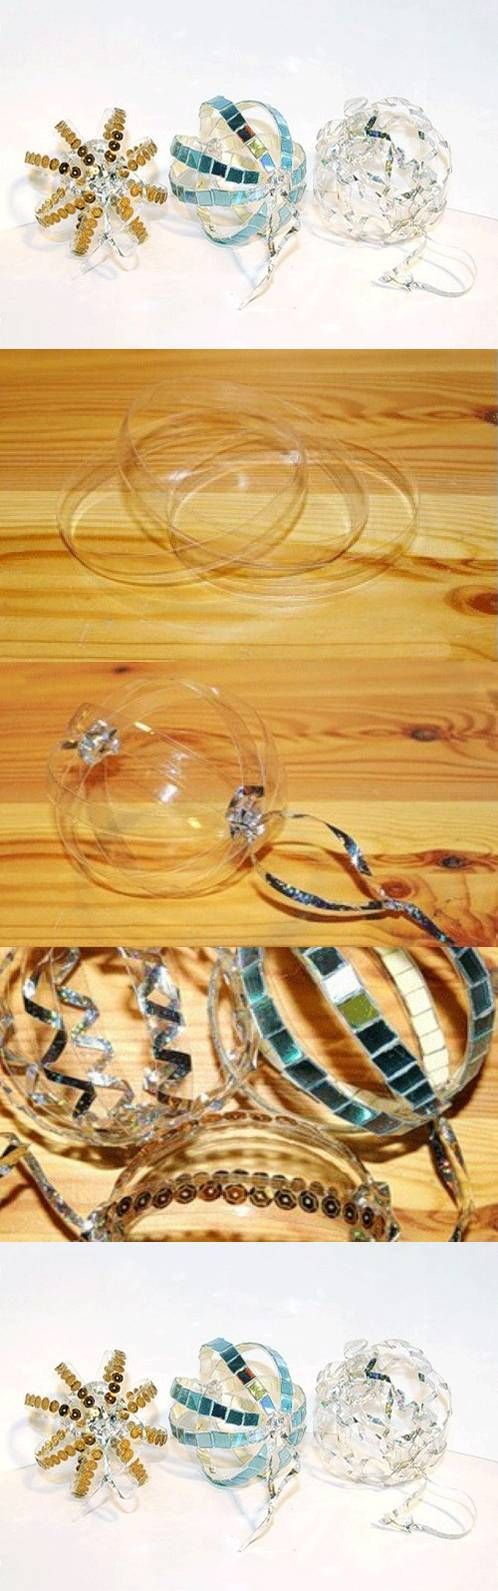 DIY Plastic Bottle Ring Ornaments DIY Projects | UsefulDIY.com